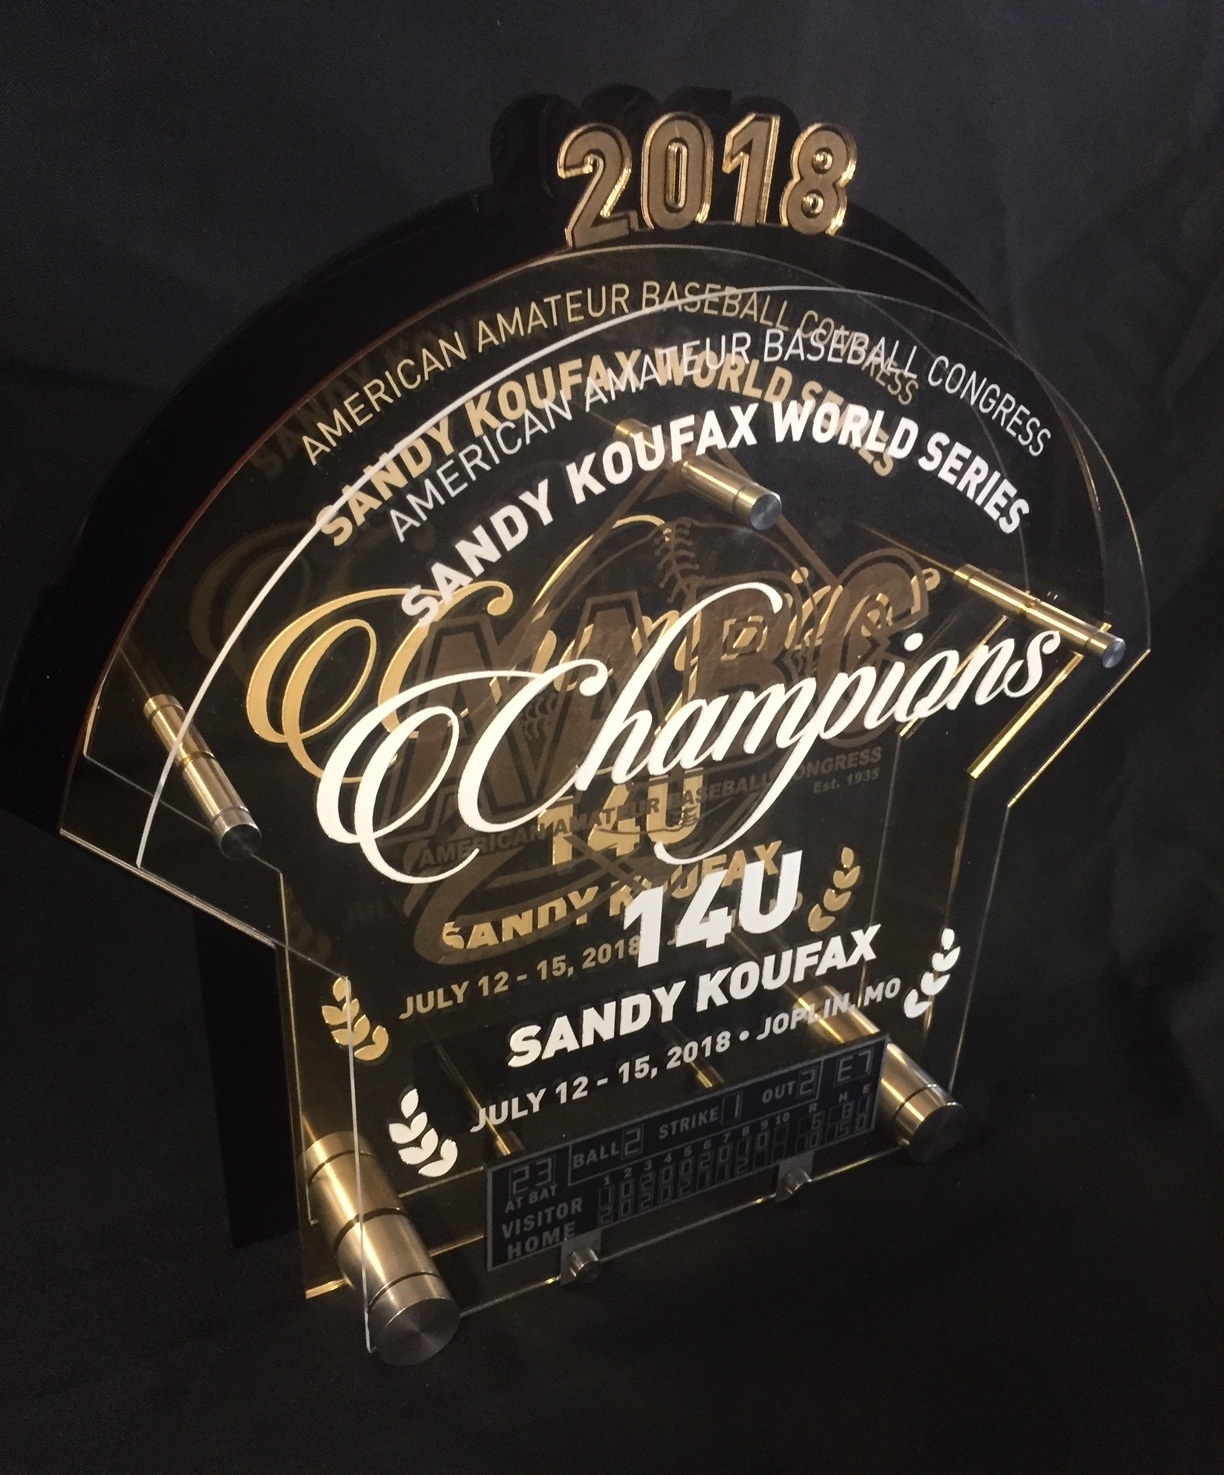 AABC - World Series Champions Award.  Contact us for pricing information.